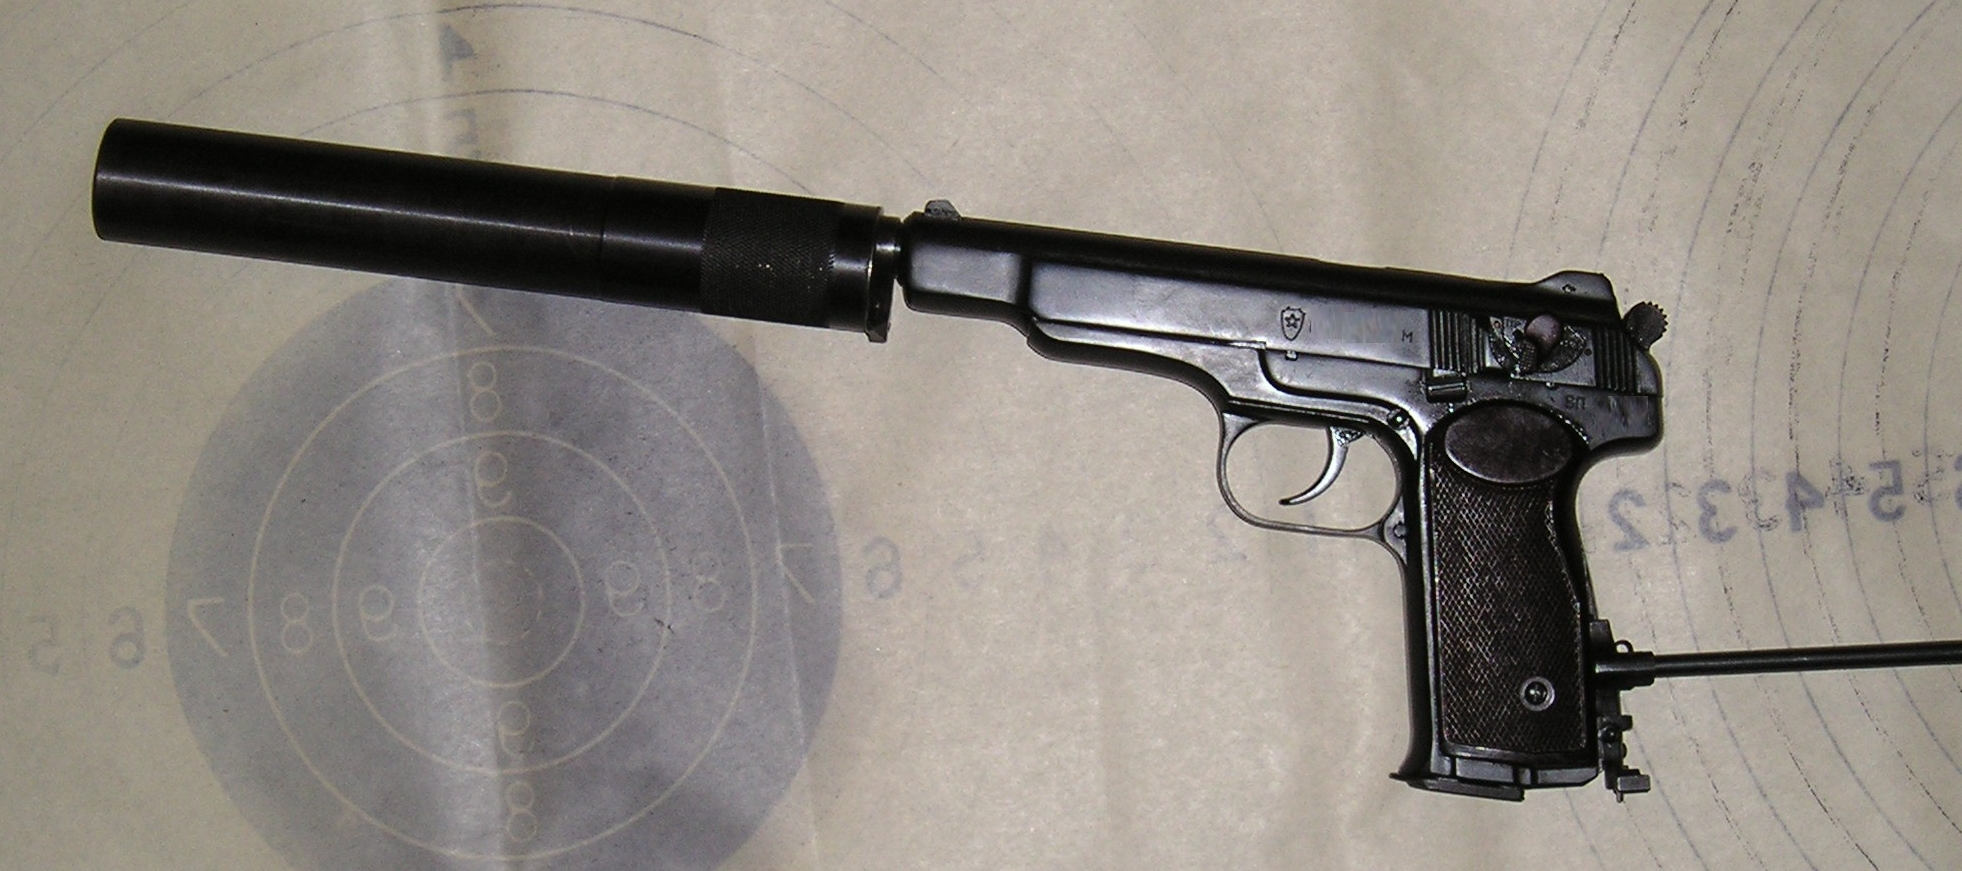 Guns The Military Uses >> Stechkin Automatic Pistol – Forgotten Weapons